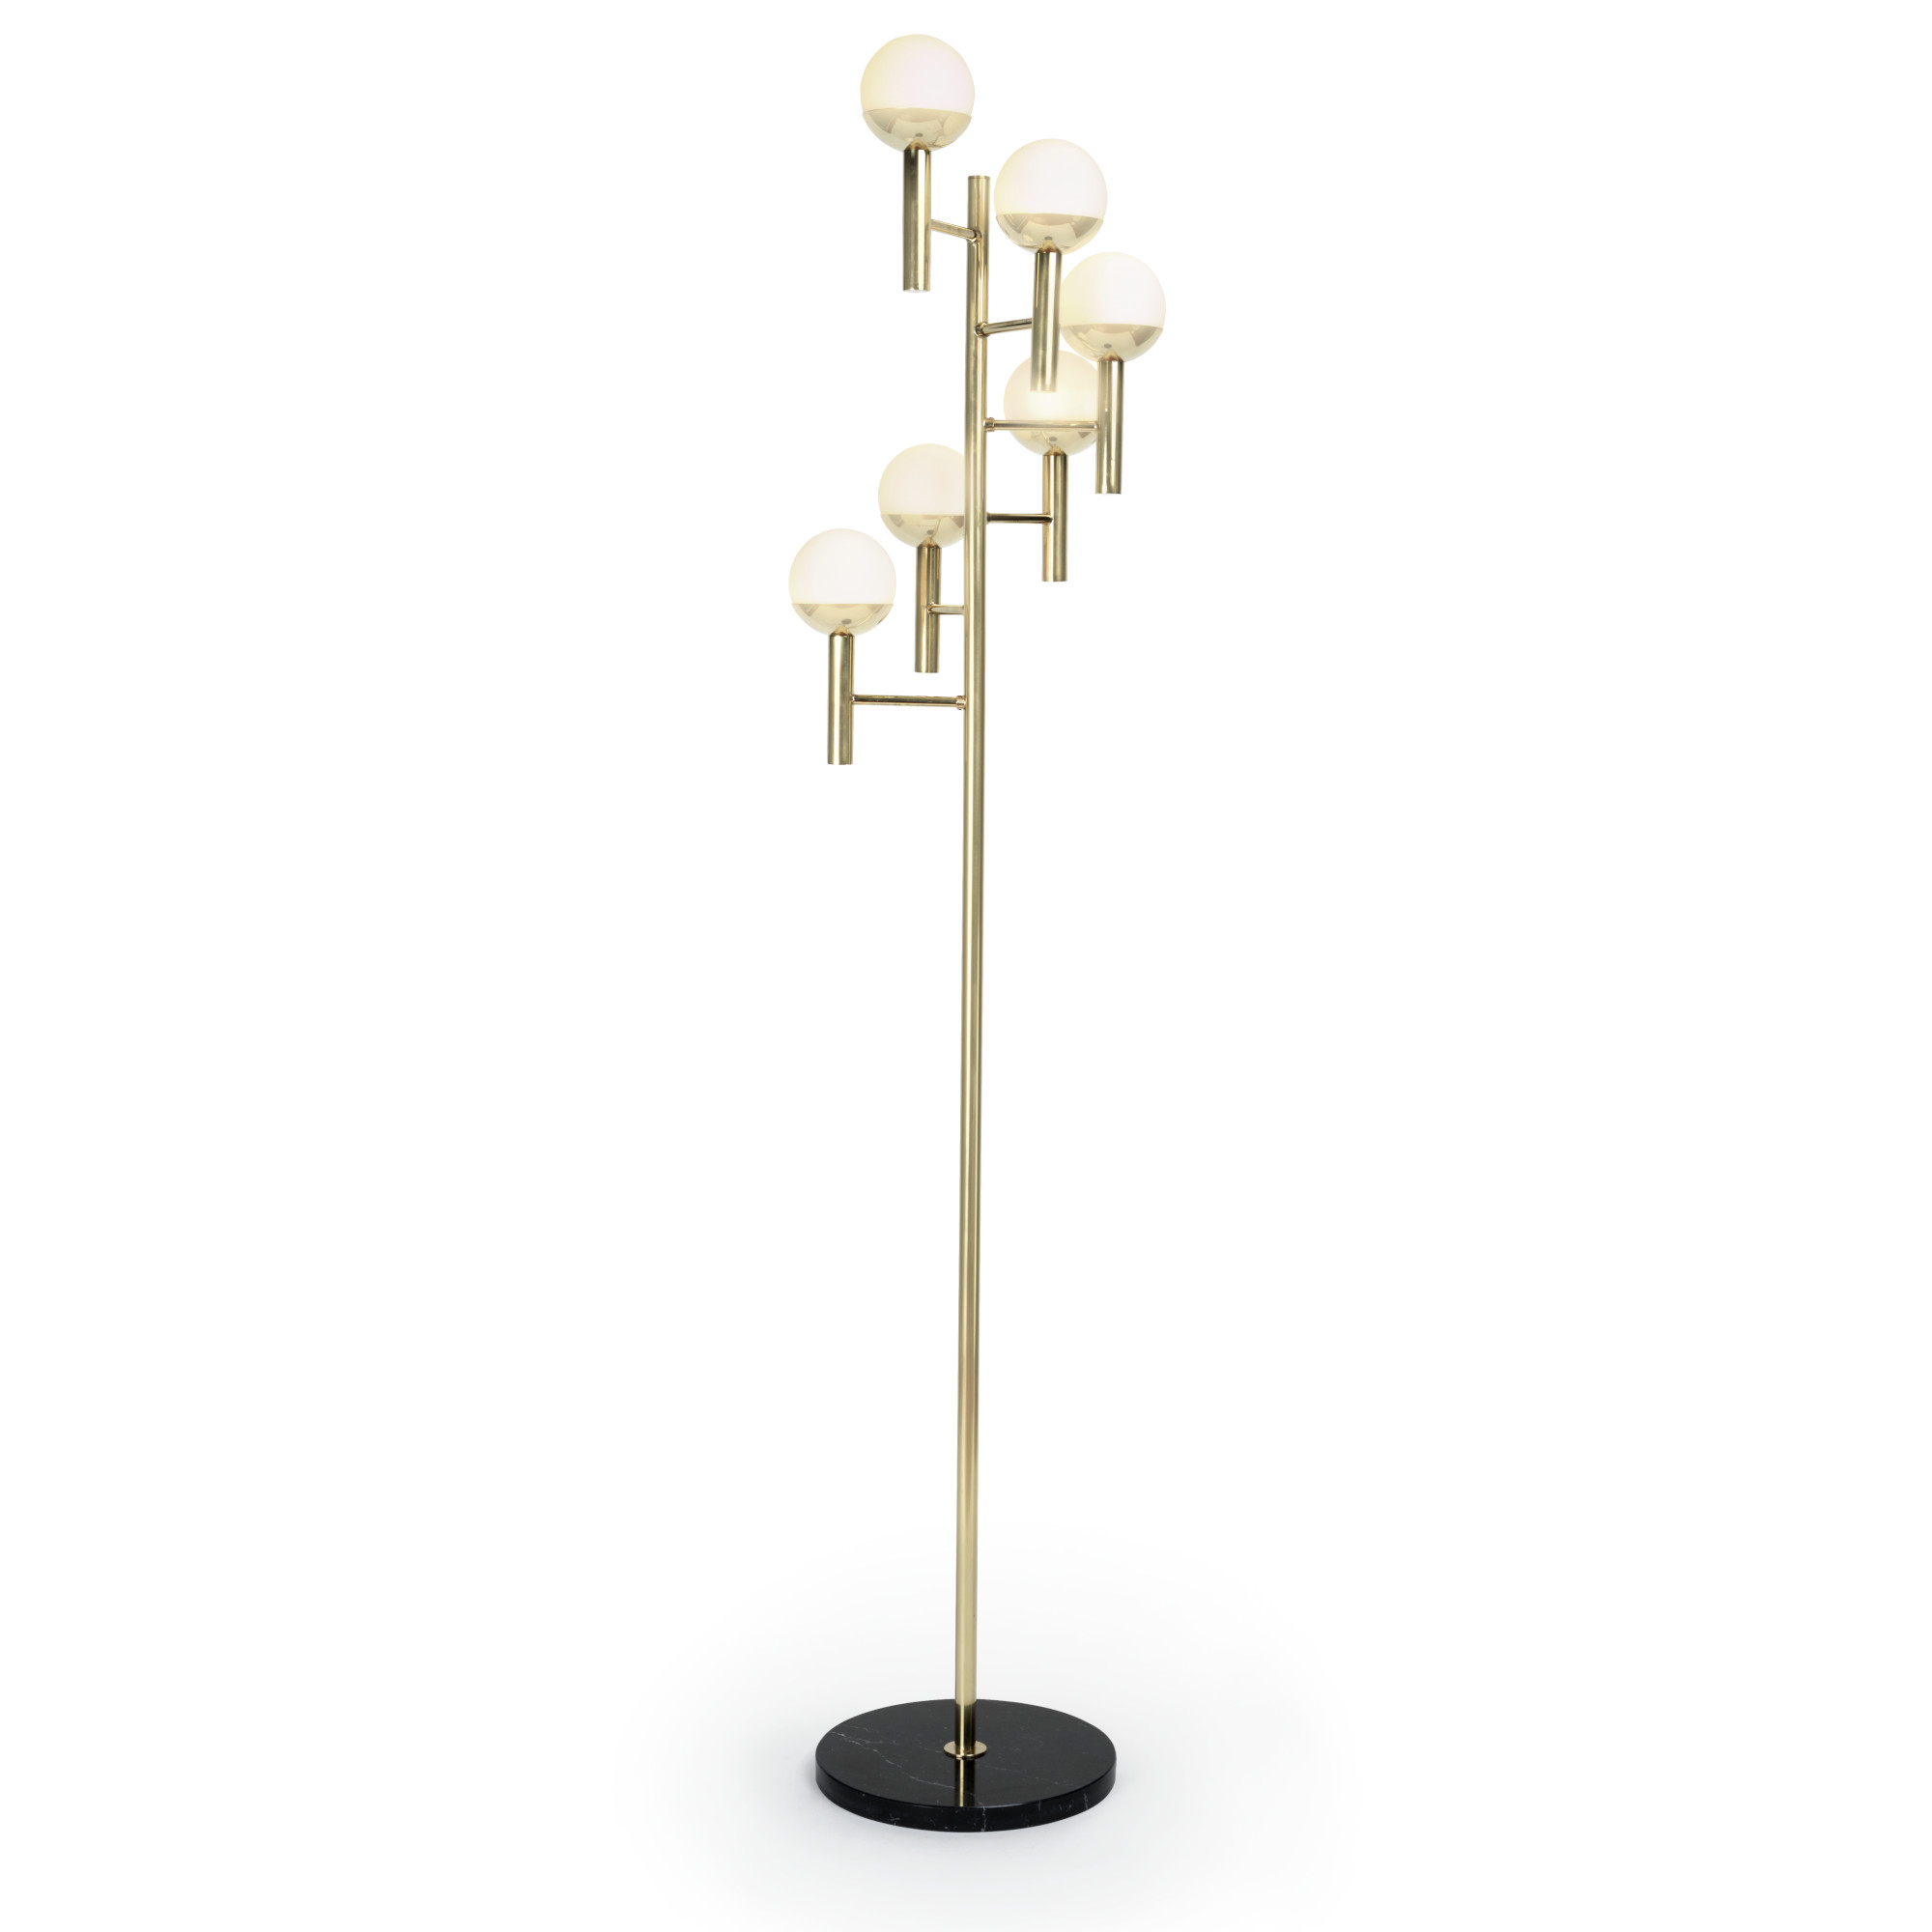 Cascade floor lamp